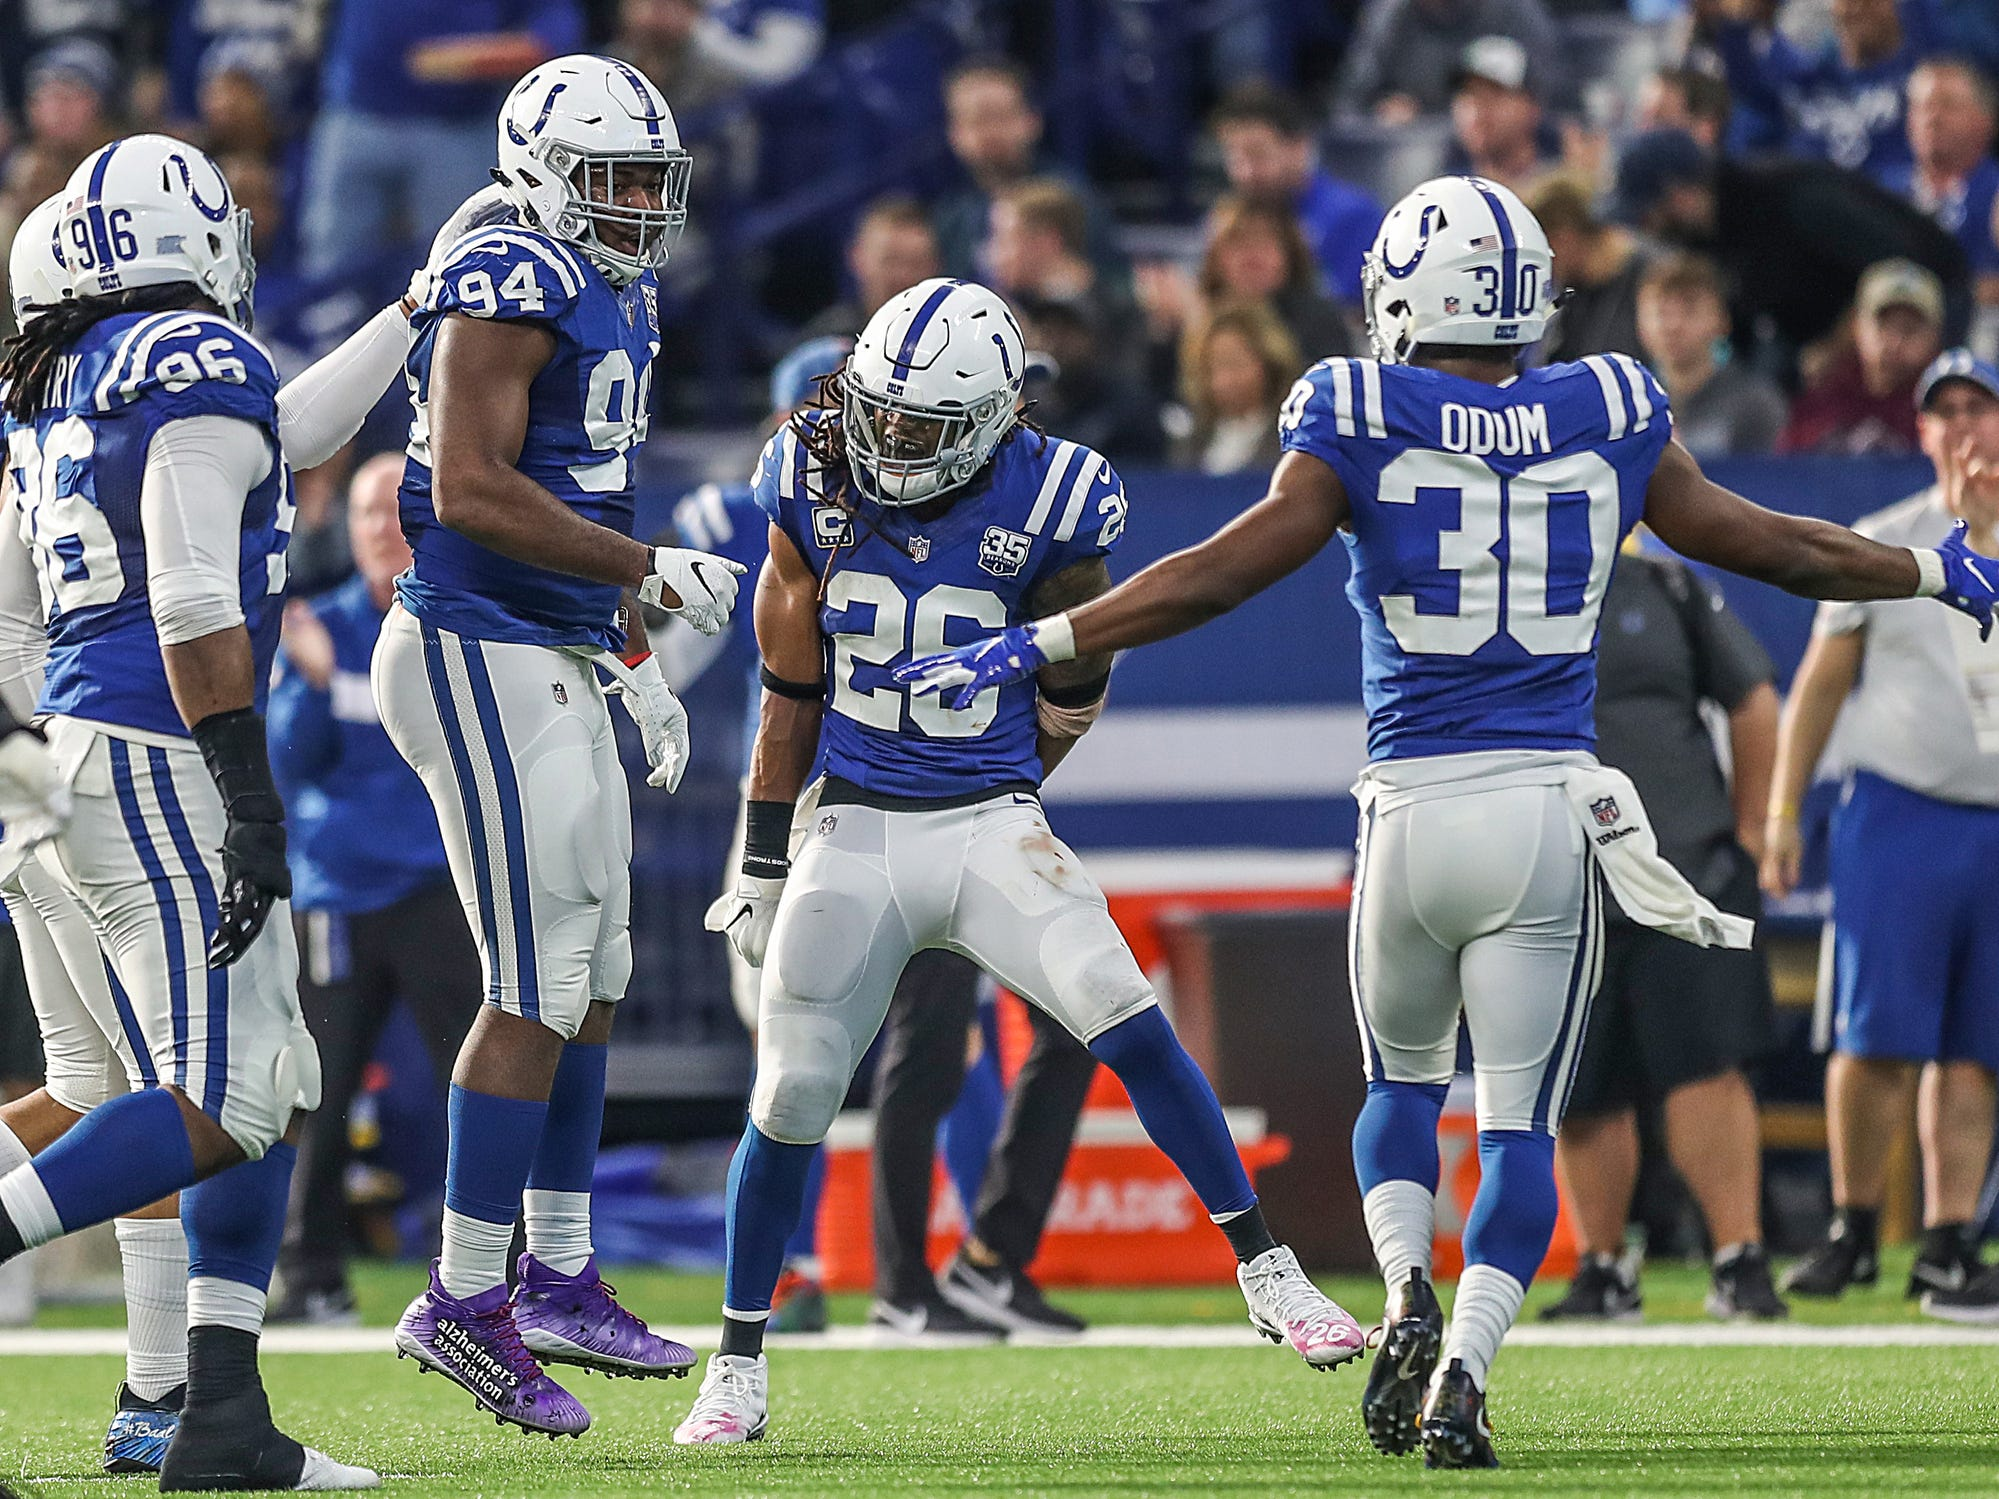 Indianapolis Colts defensive end Tyquan Lewis (94) celebrates his second quarterback sack of the game, in the first half at Lucas Oil Stadium in Indianapolis, Sunday, Dec. 16, 2018.